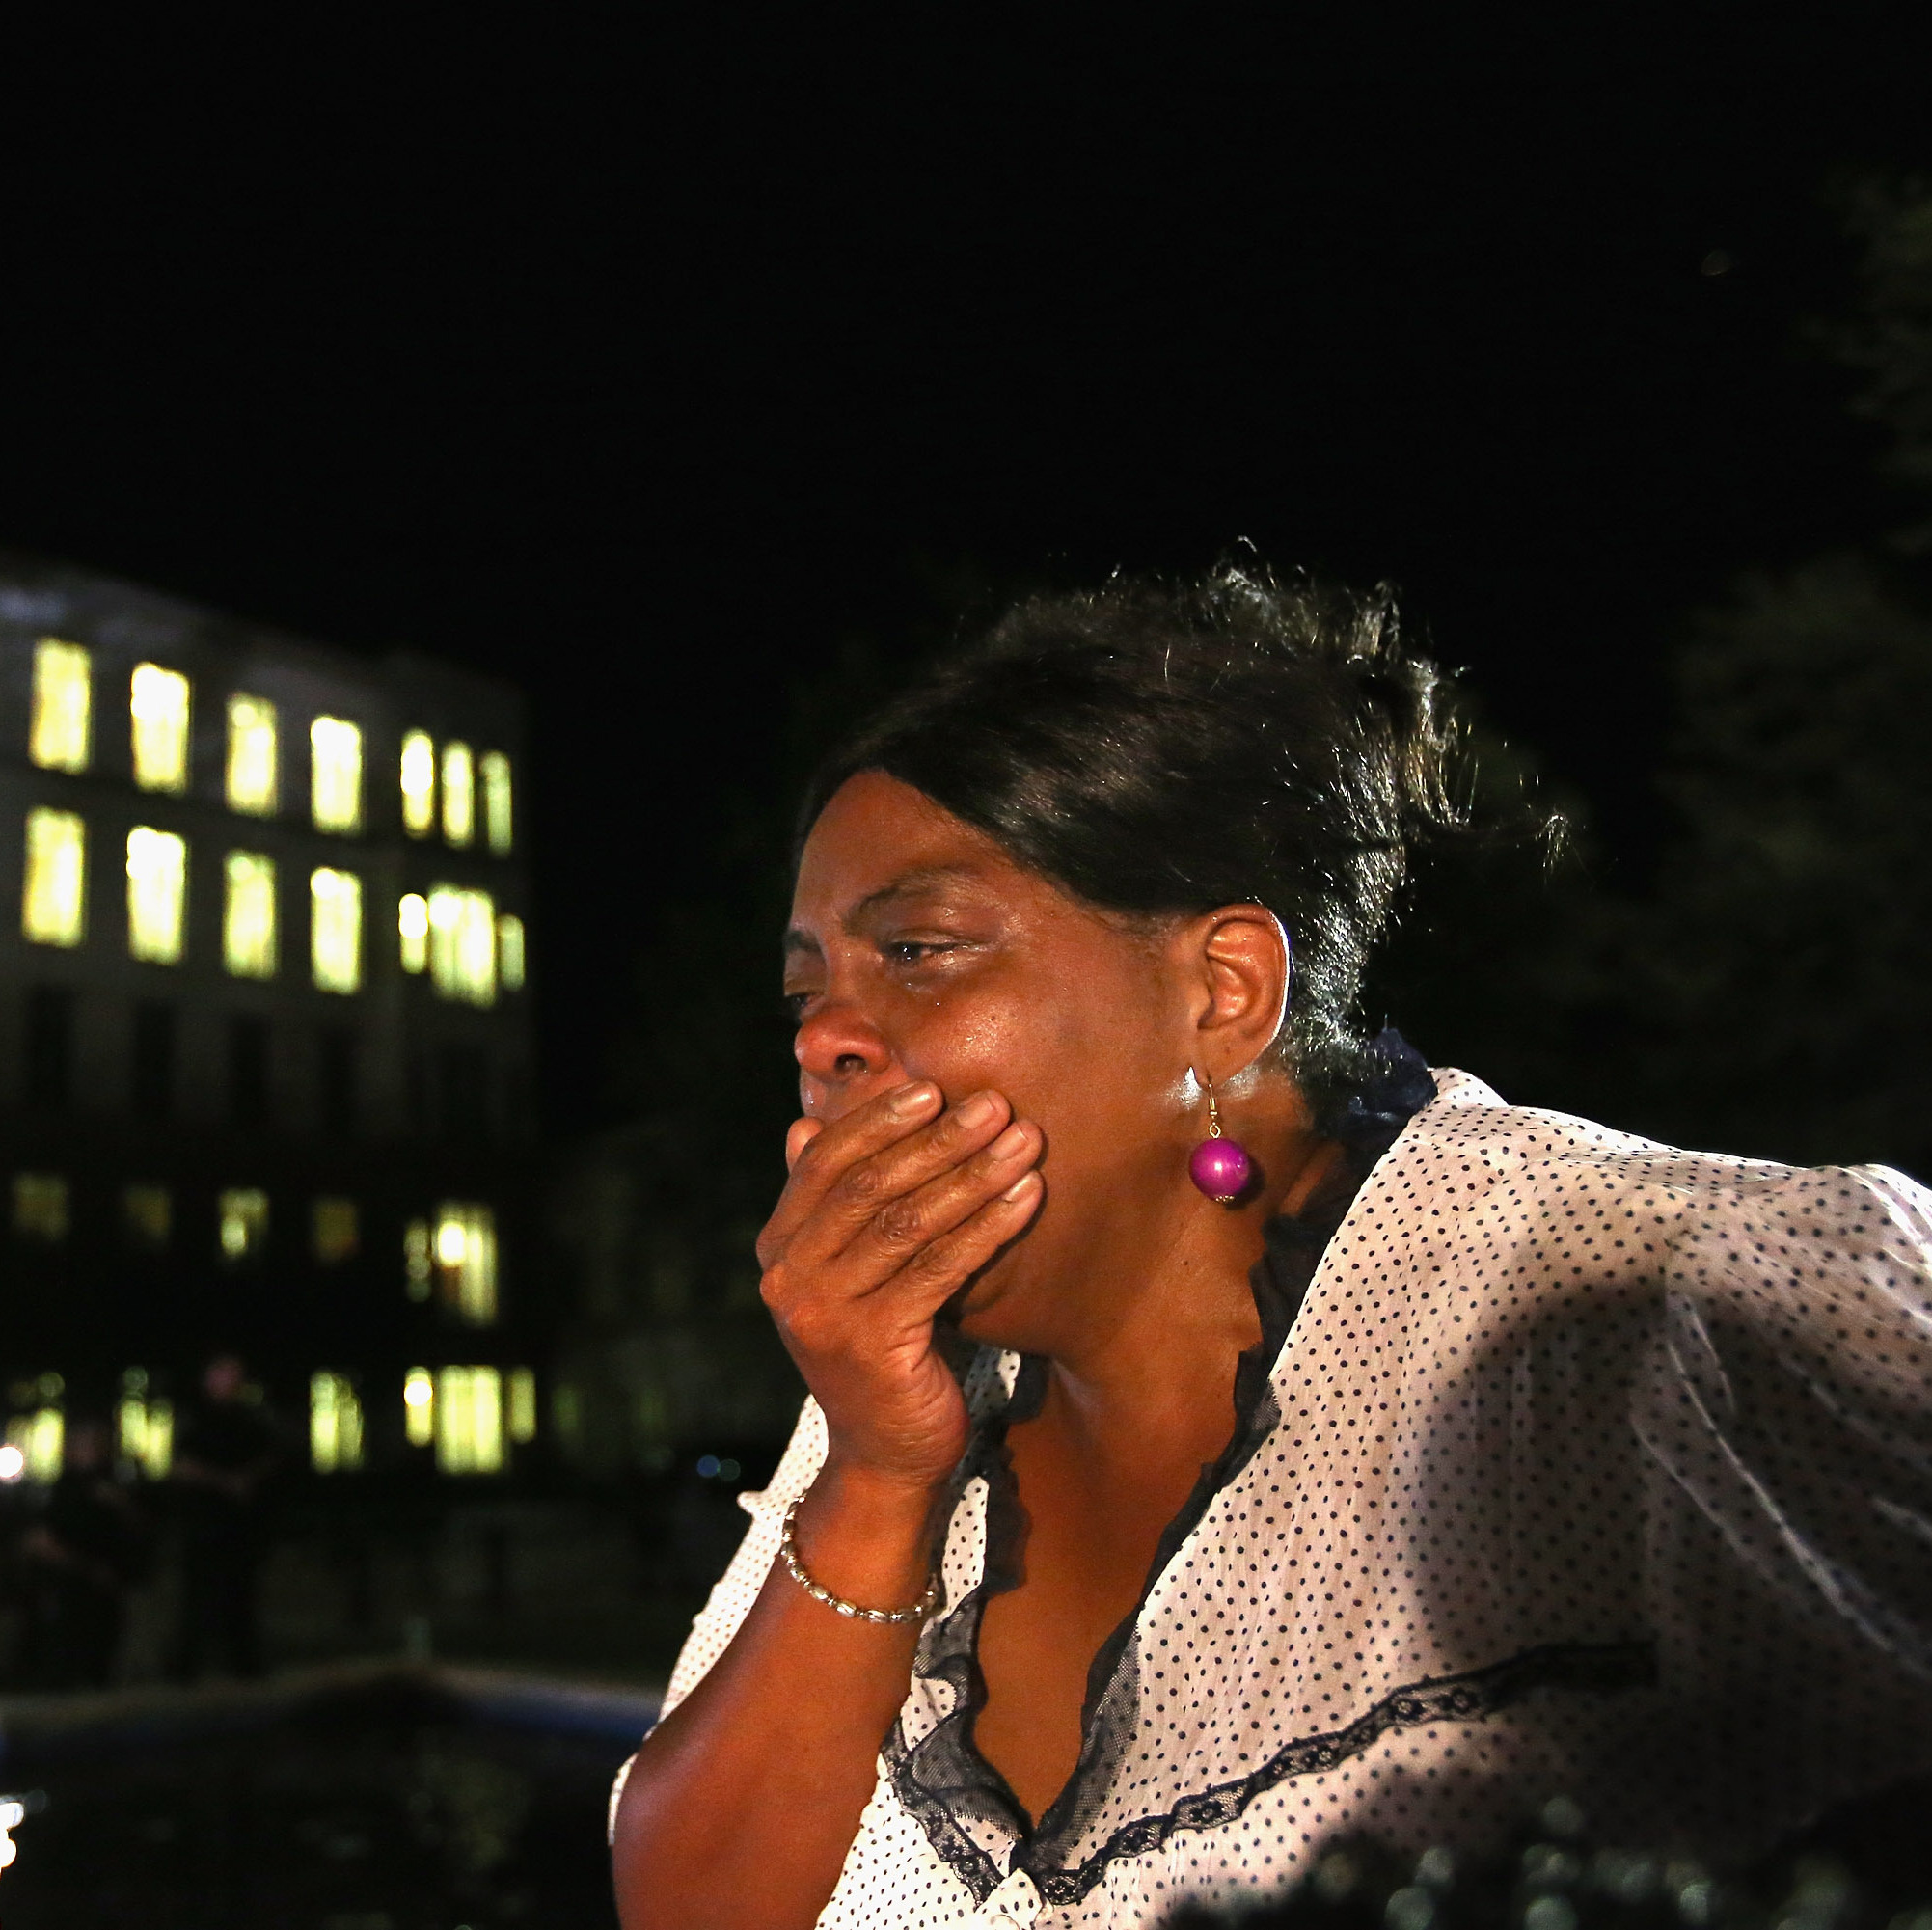 A stunned Carmen Taylor bursts into tears in front of the Seminole County Criminal Justice Center after learning George Zimmerman had been found not guilty late Saturday.